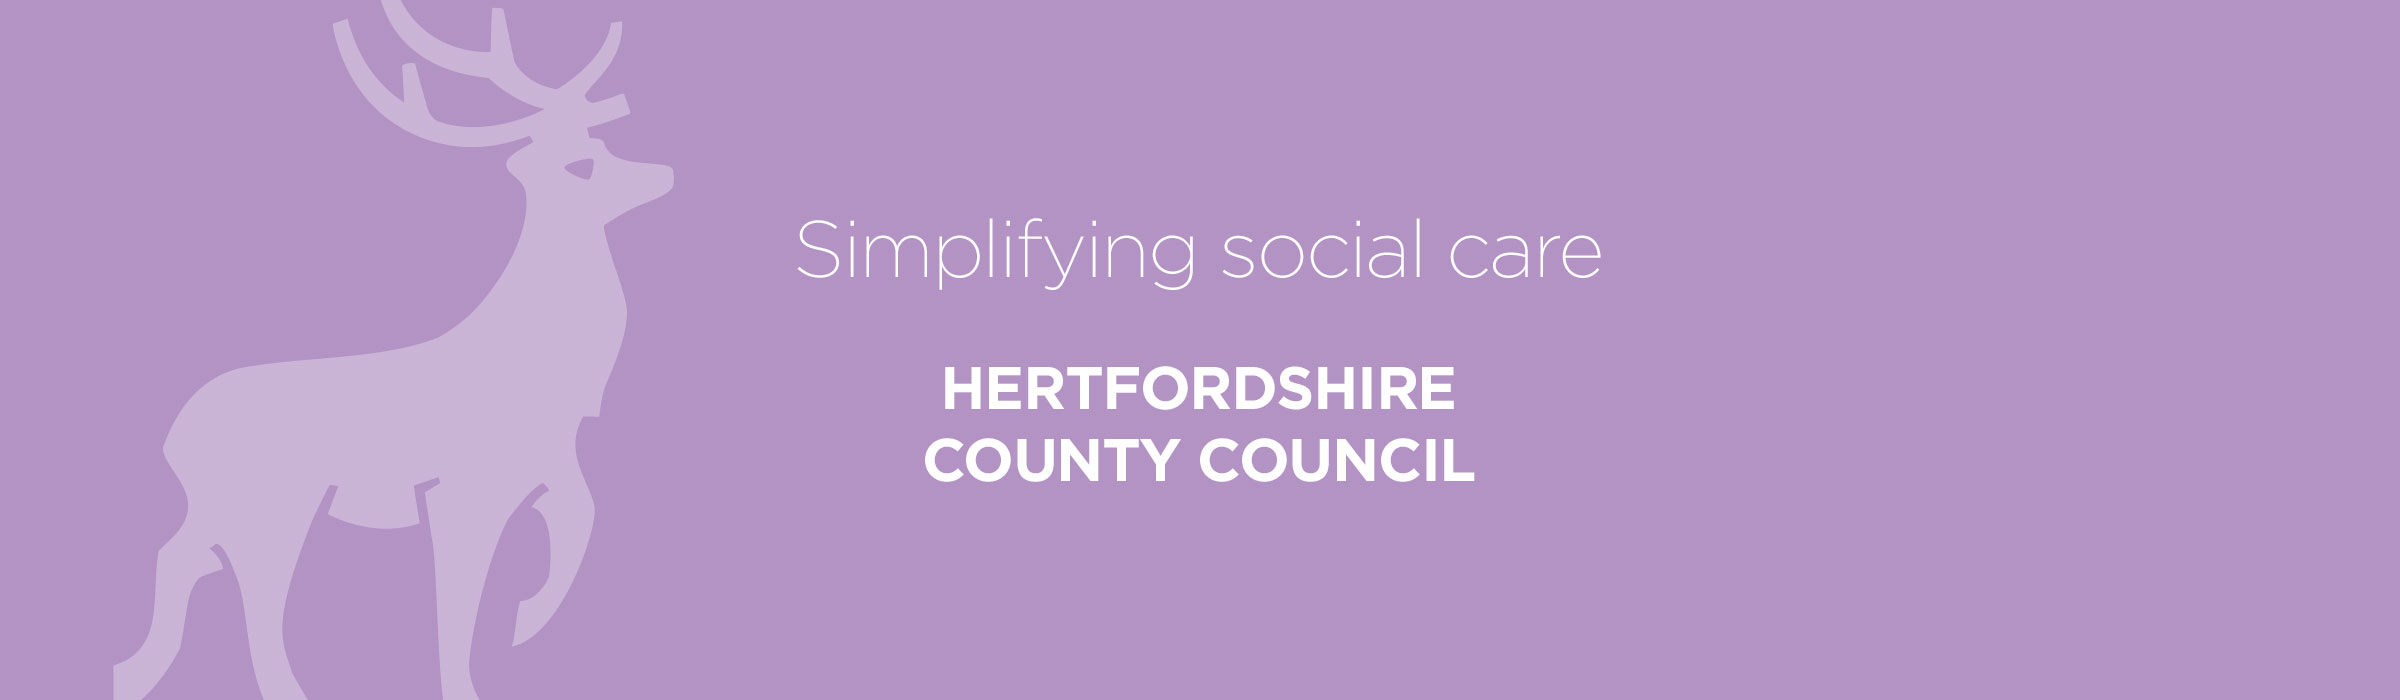 Hertfordshire County Council – Simplifying social care